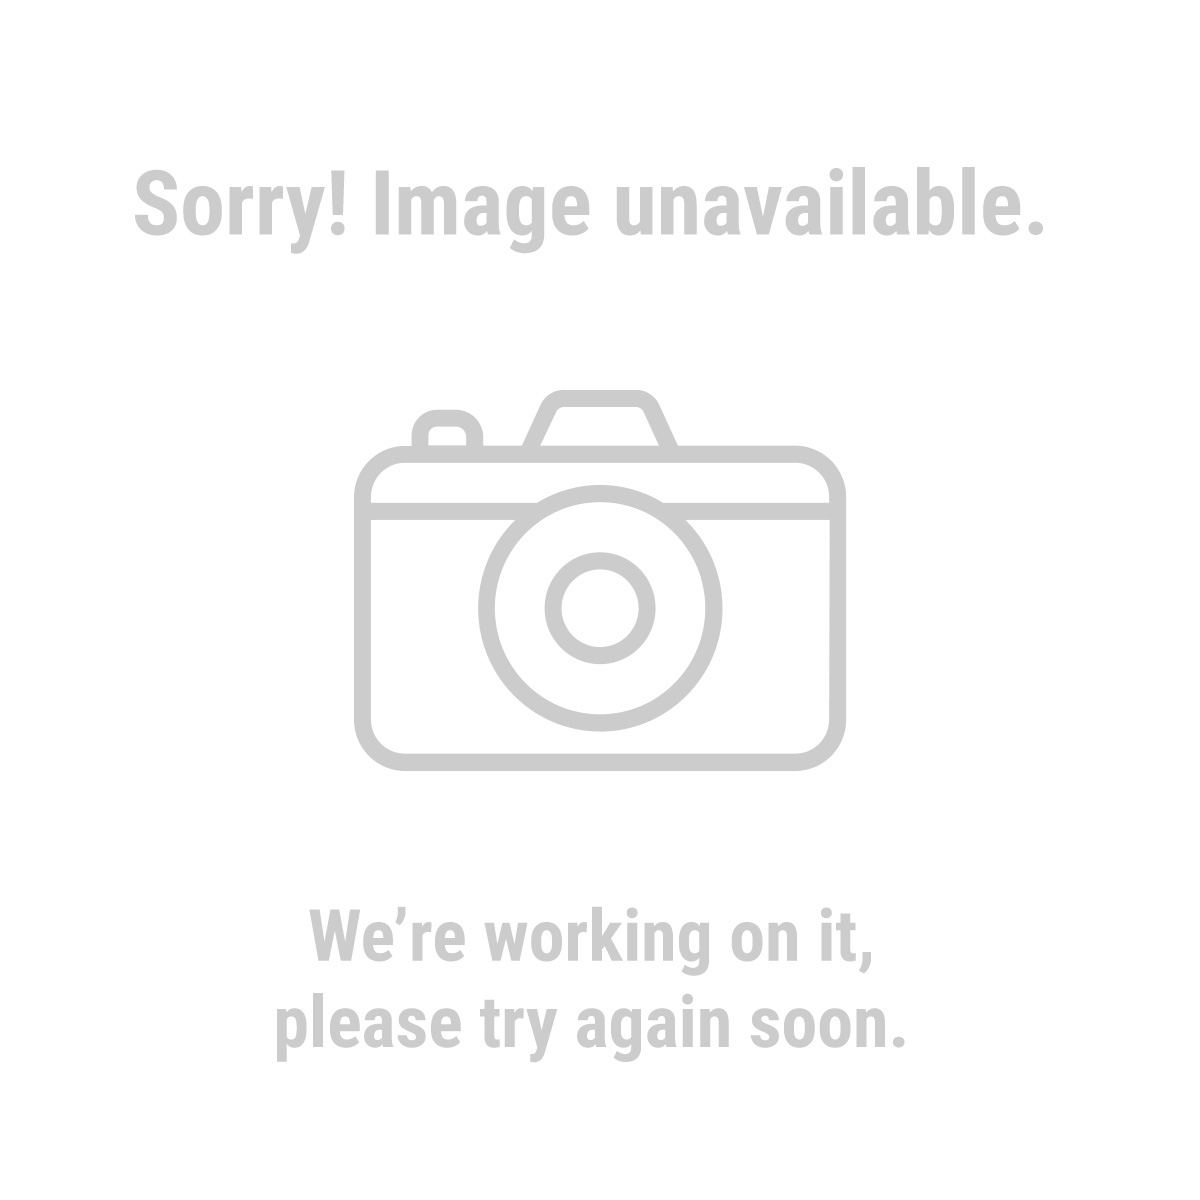 Cen-Tech 61838 High Resolution Digital Inspection Camera with Recorder